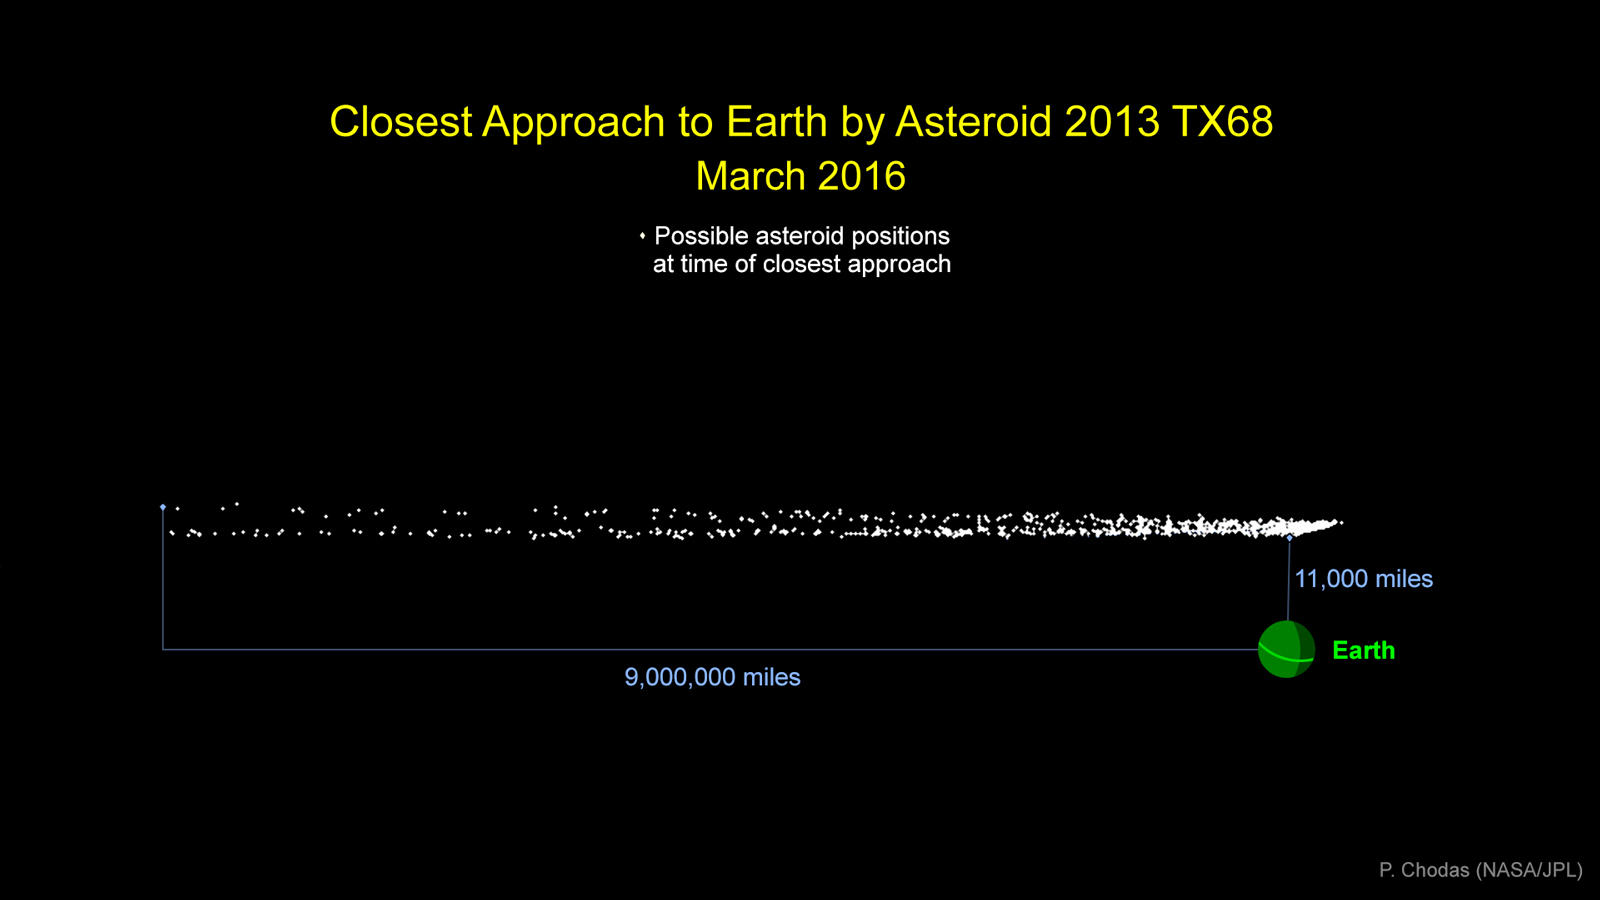 http://www.cite-espace.com/content/uploads/2016/02/asteroid20160202-16.jpg